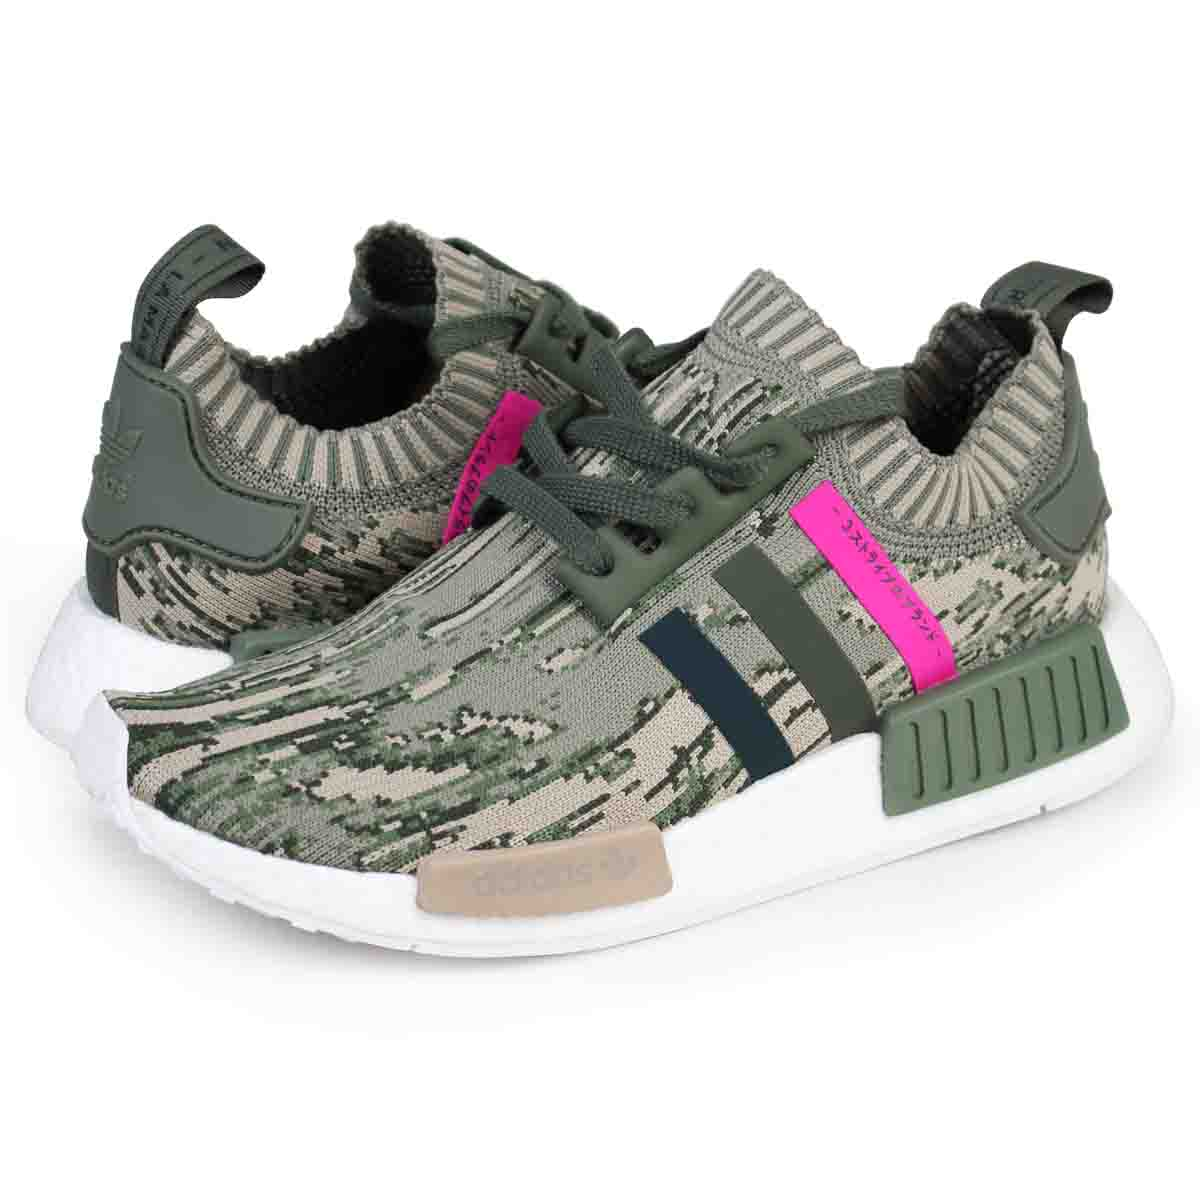 adidas originals NMD R1 PK Adidas sneakers nomad men gap Dis BY9864 shoes  green [load planned Shinnyu load in reservation product 10/19 containing]  [1710]